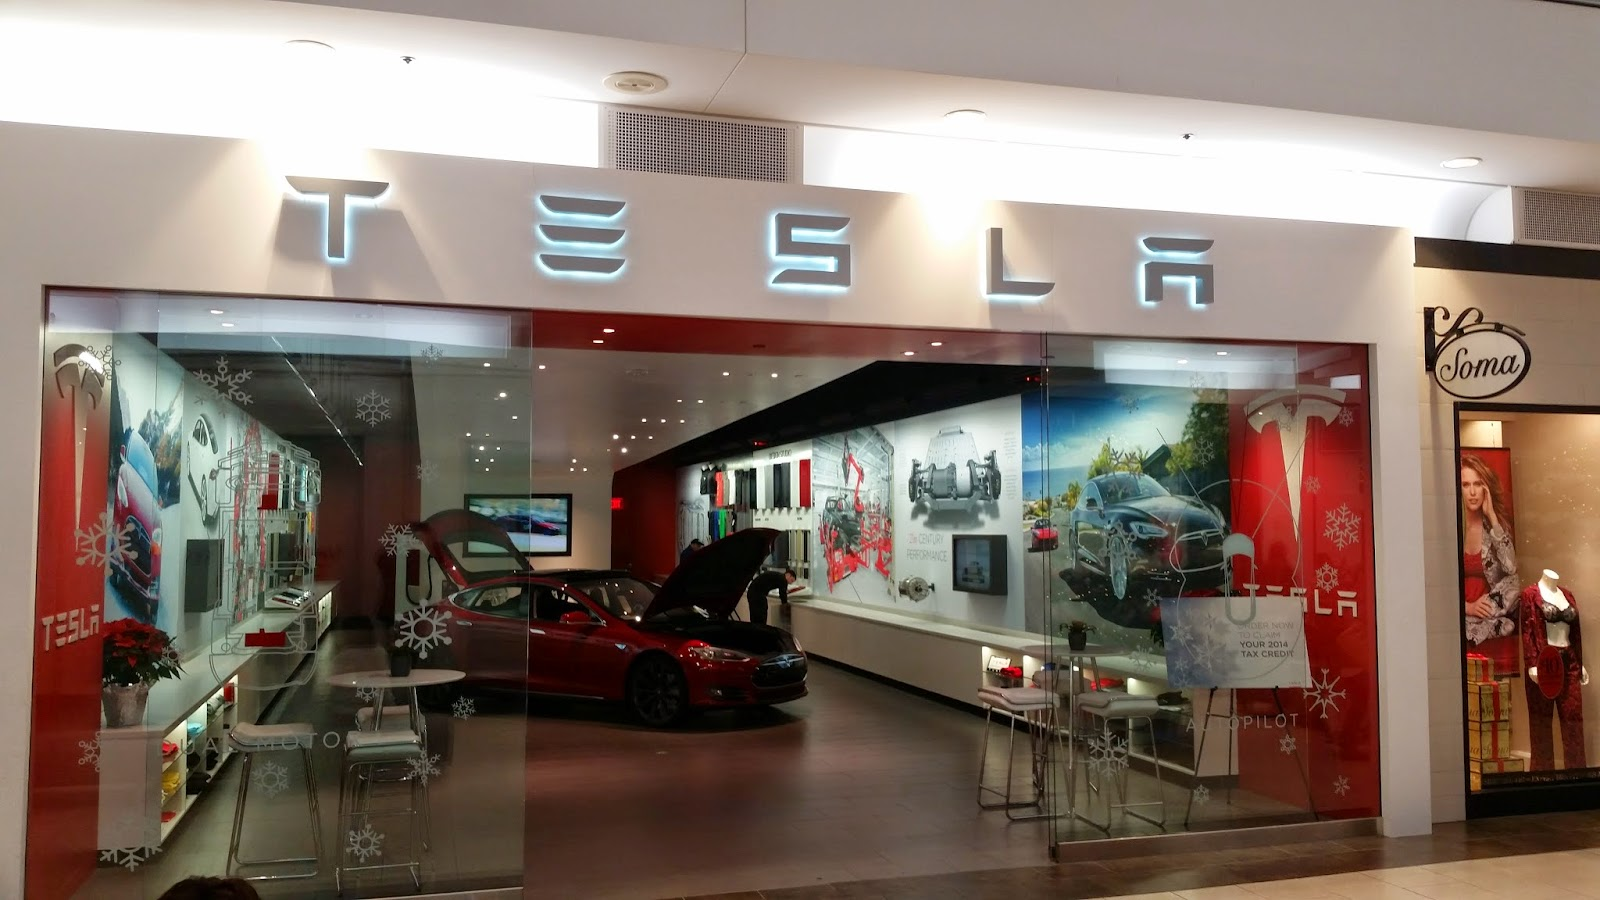 Tesla storefront at Natick Mall